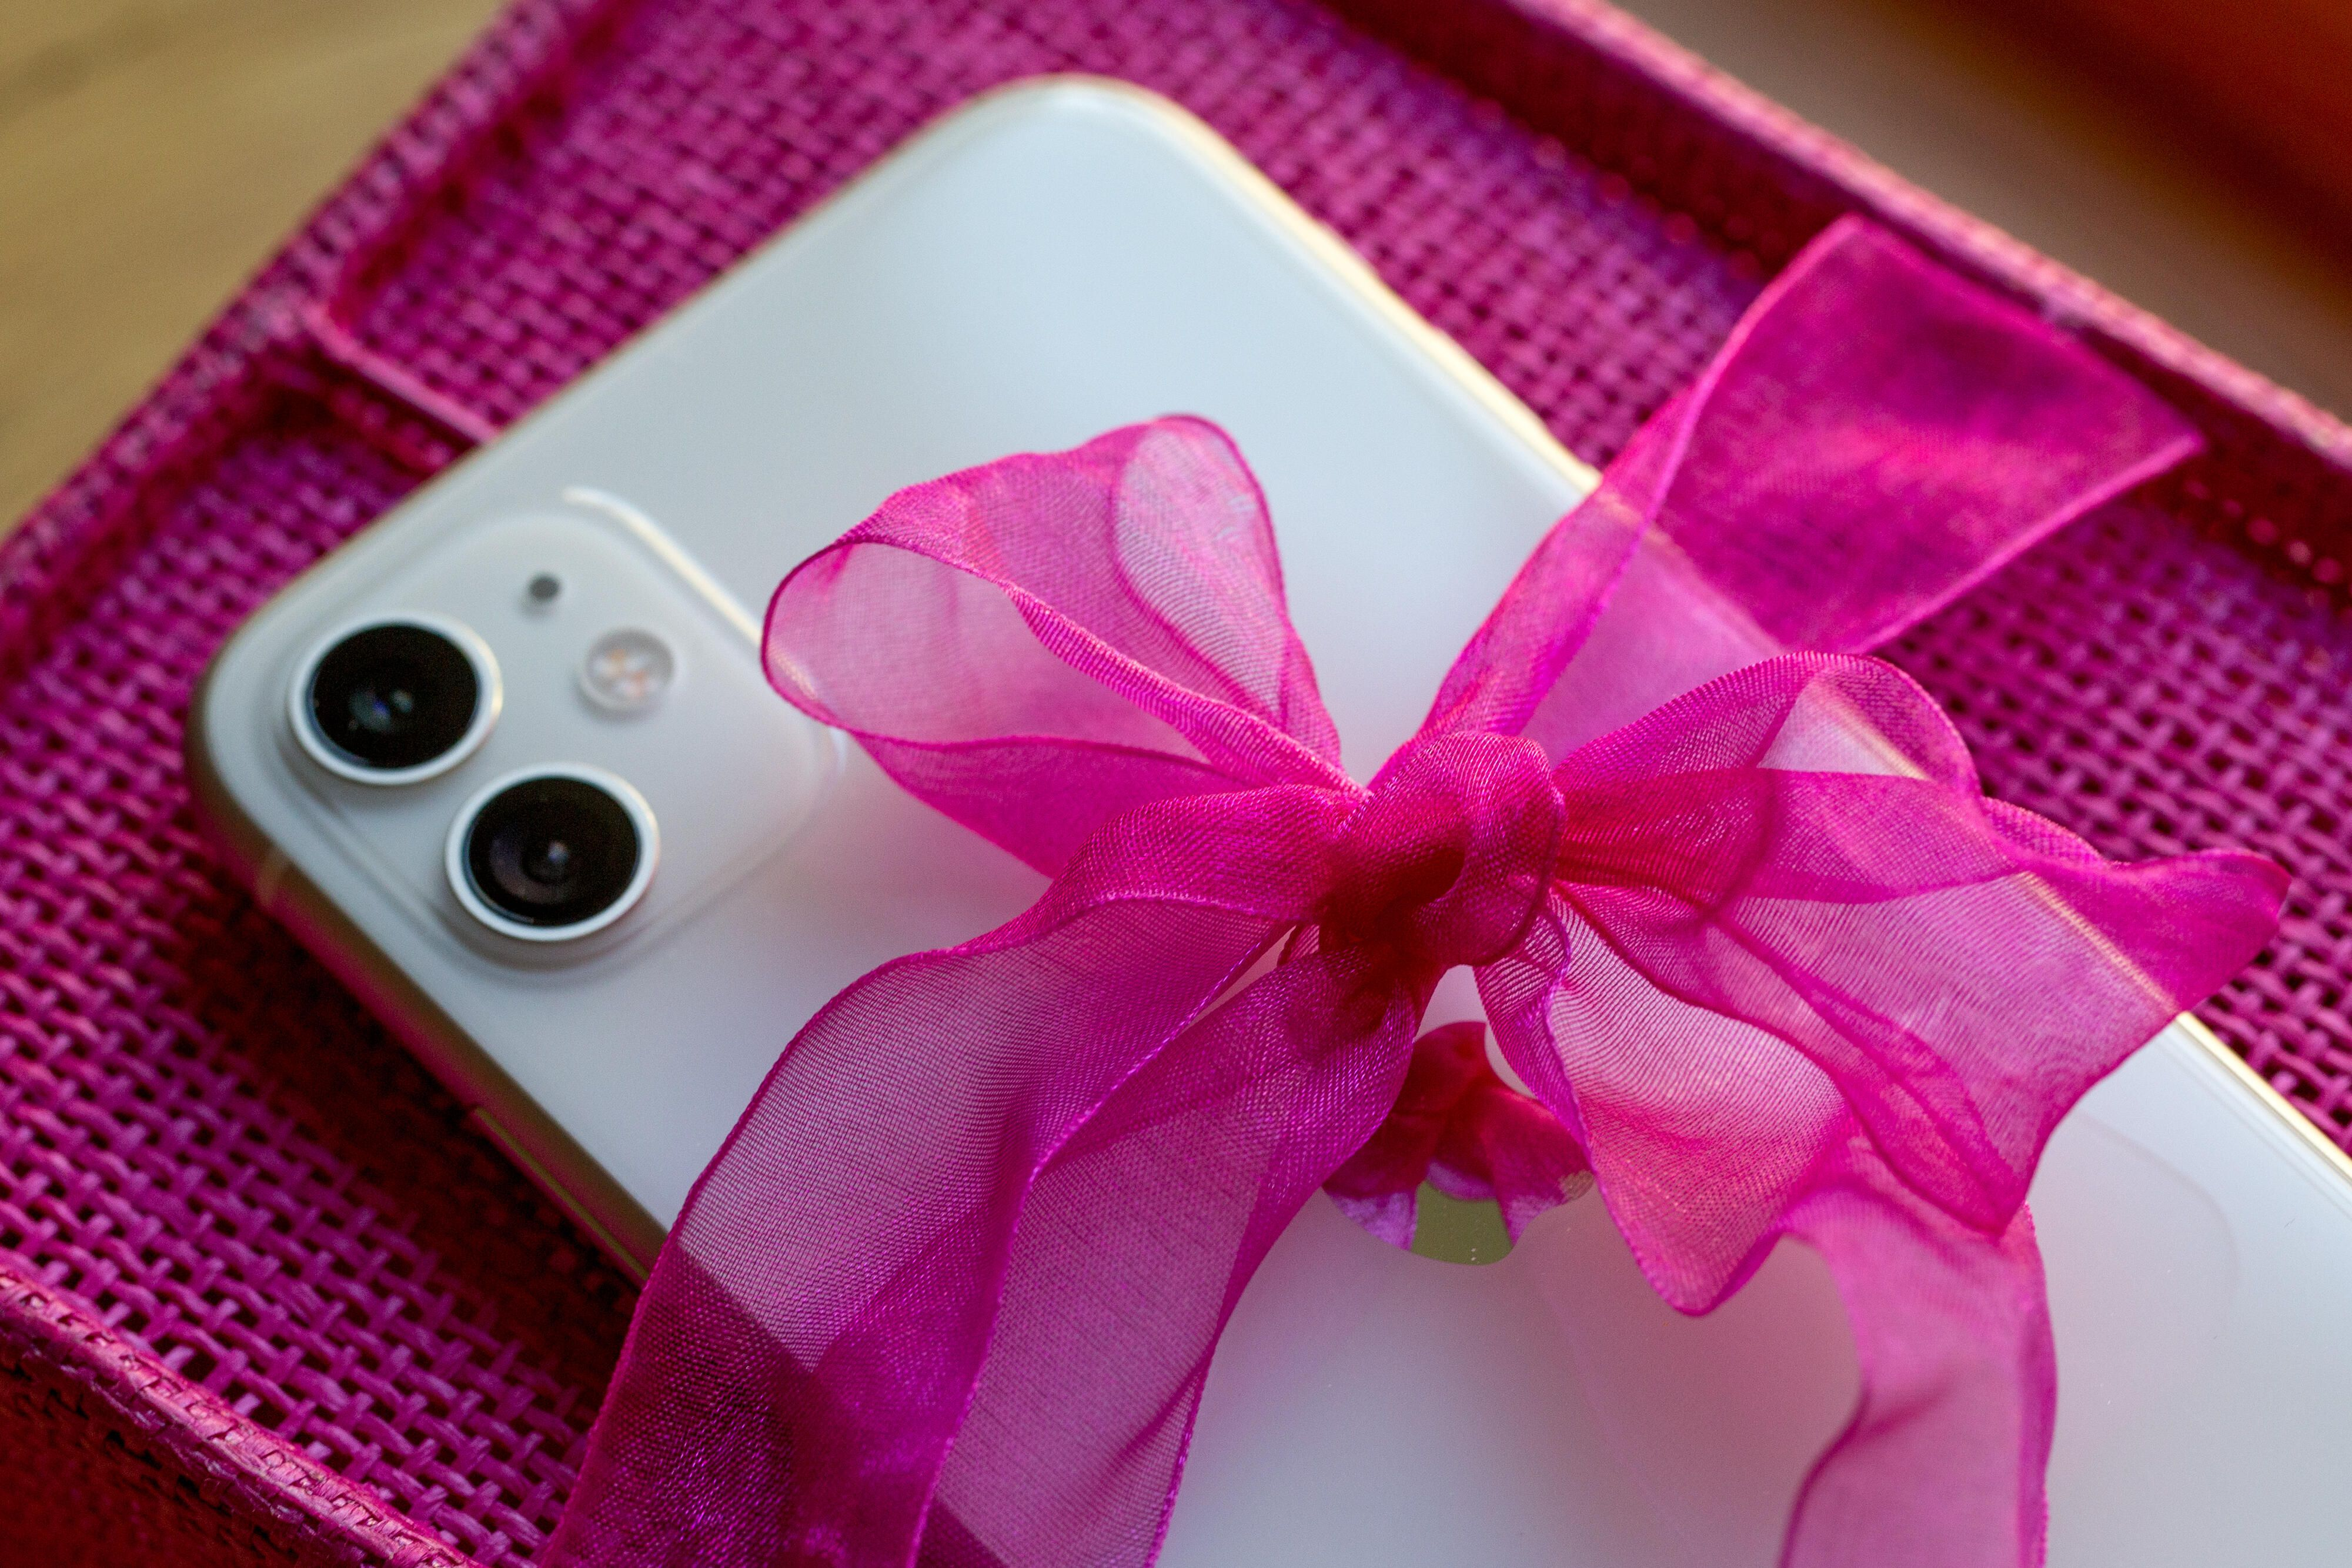 apple-iphone-gift-wrapping-bow-9068